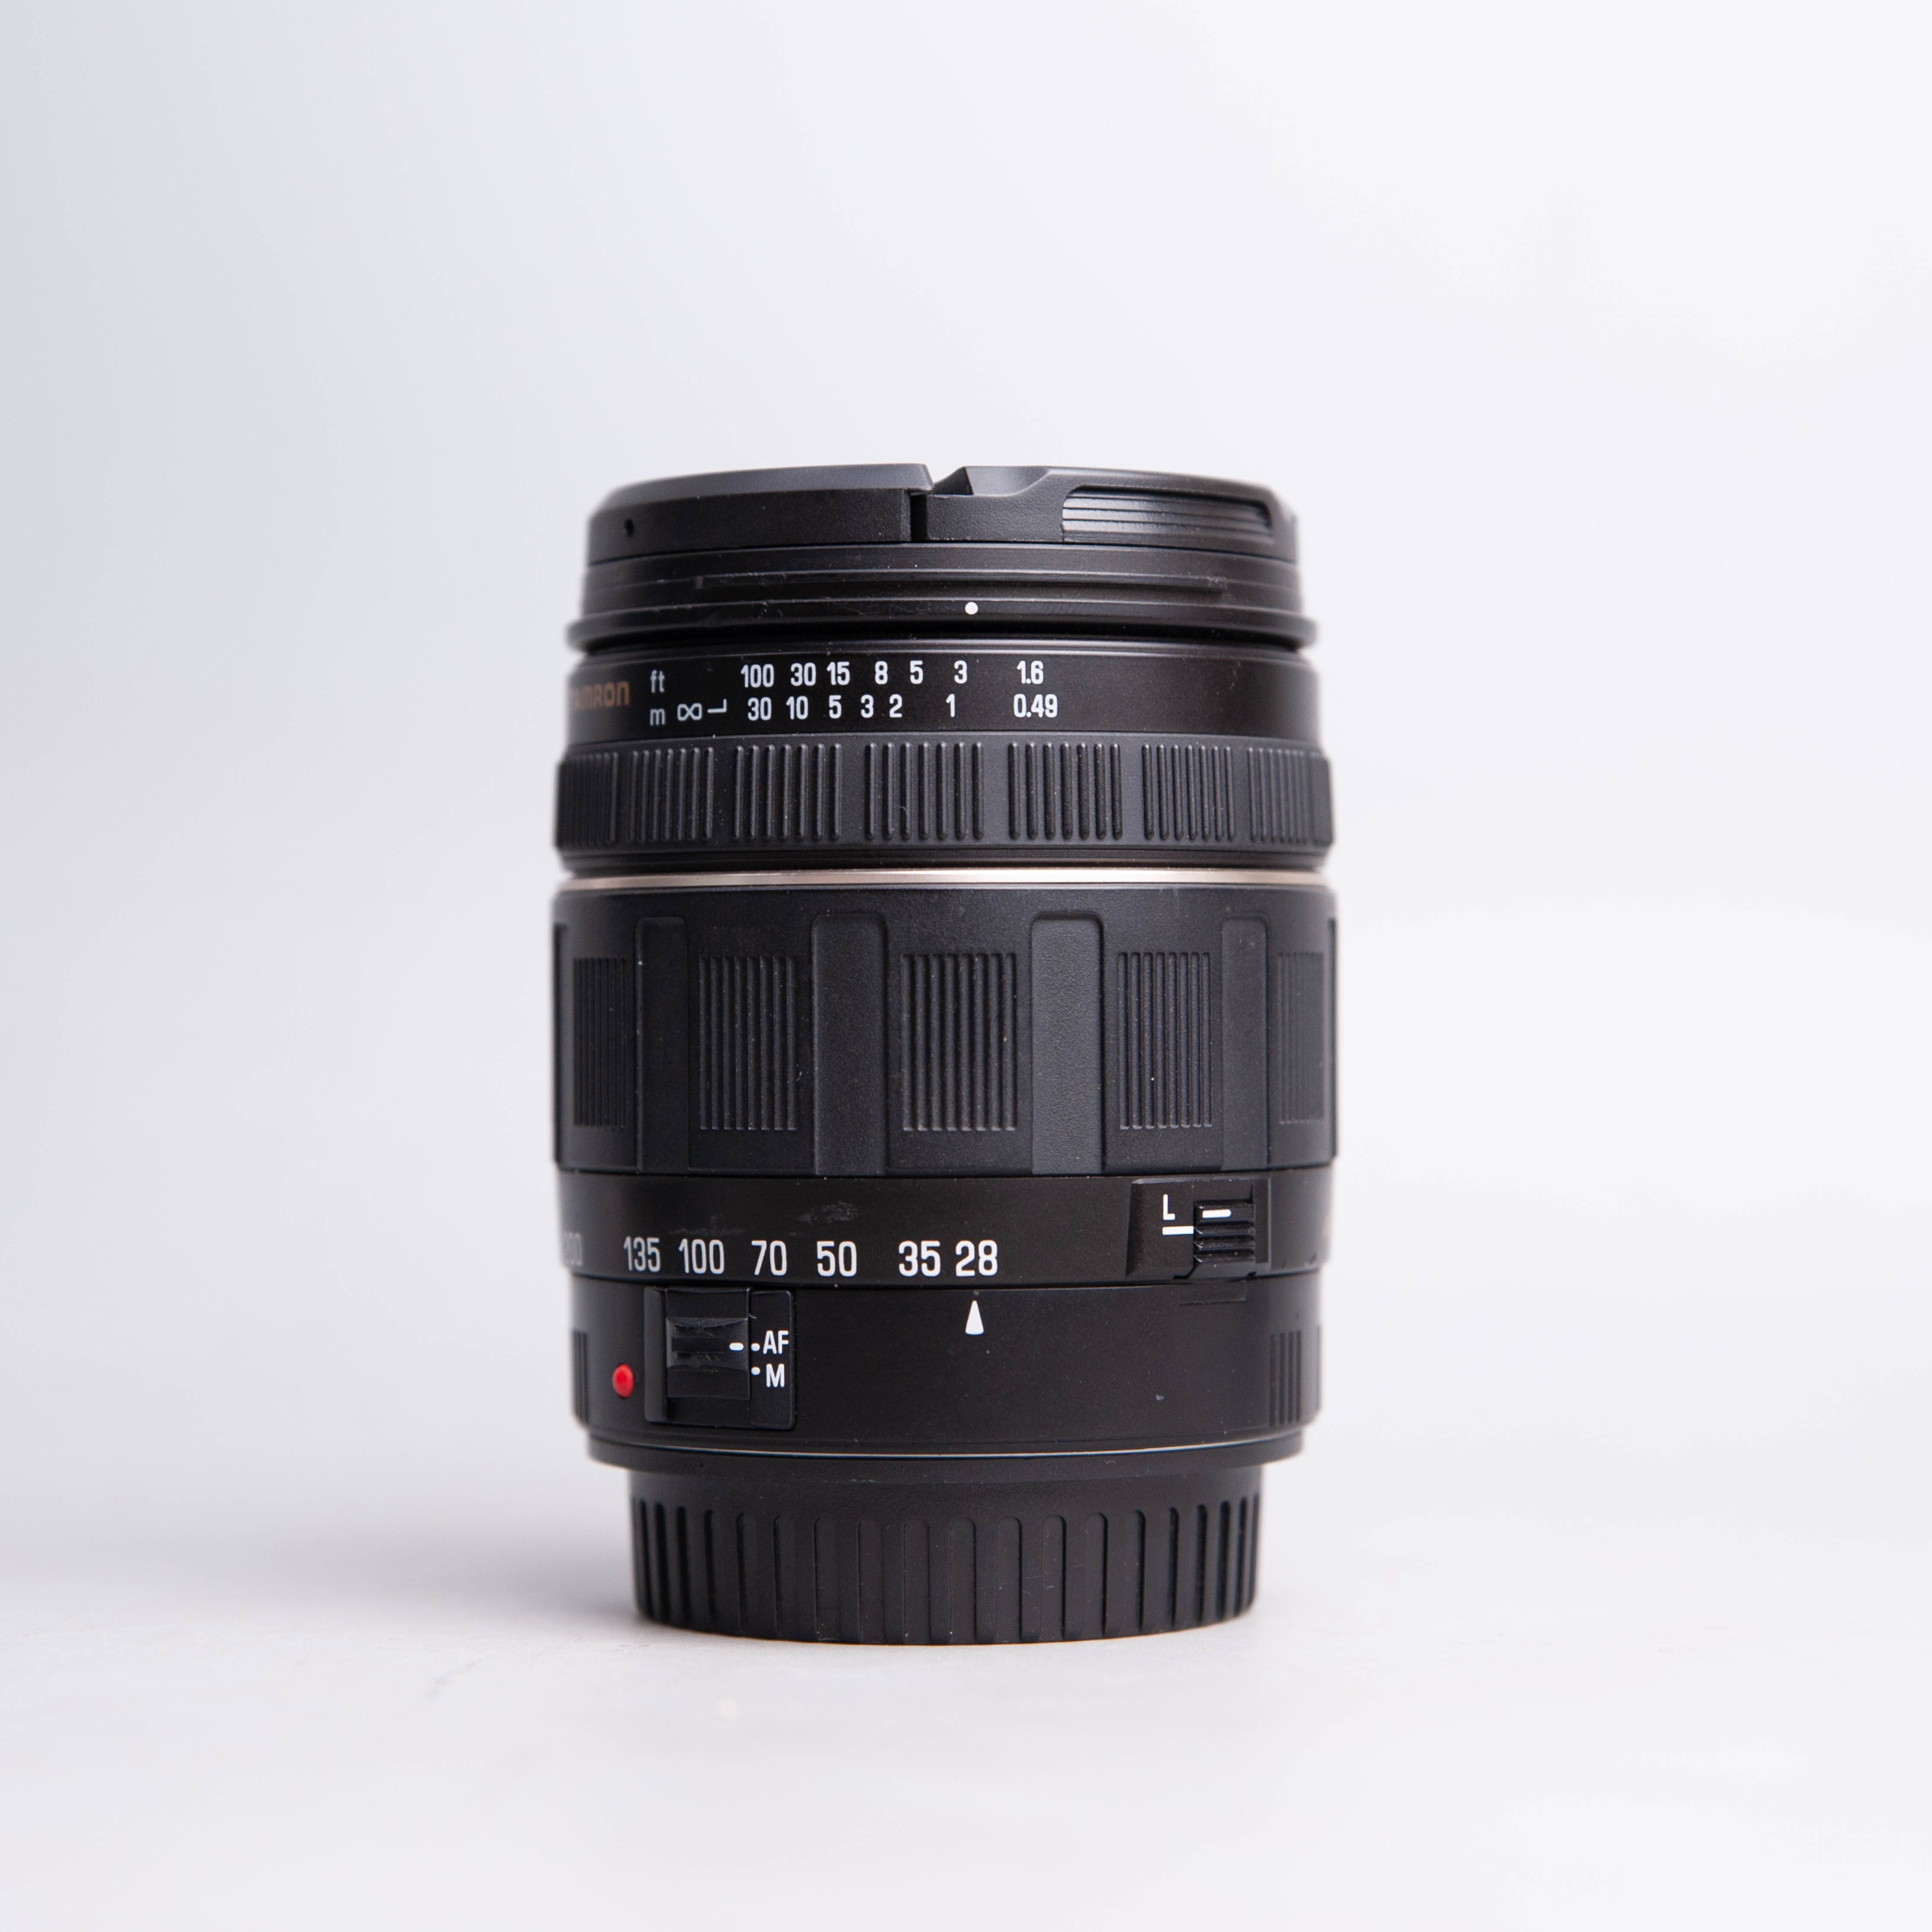 tamron-28-200mm-f3-8-5-6-aspherical-xr-if-af-canon-28-300-3-8-5-6-10677